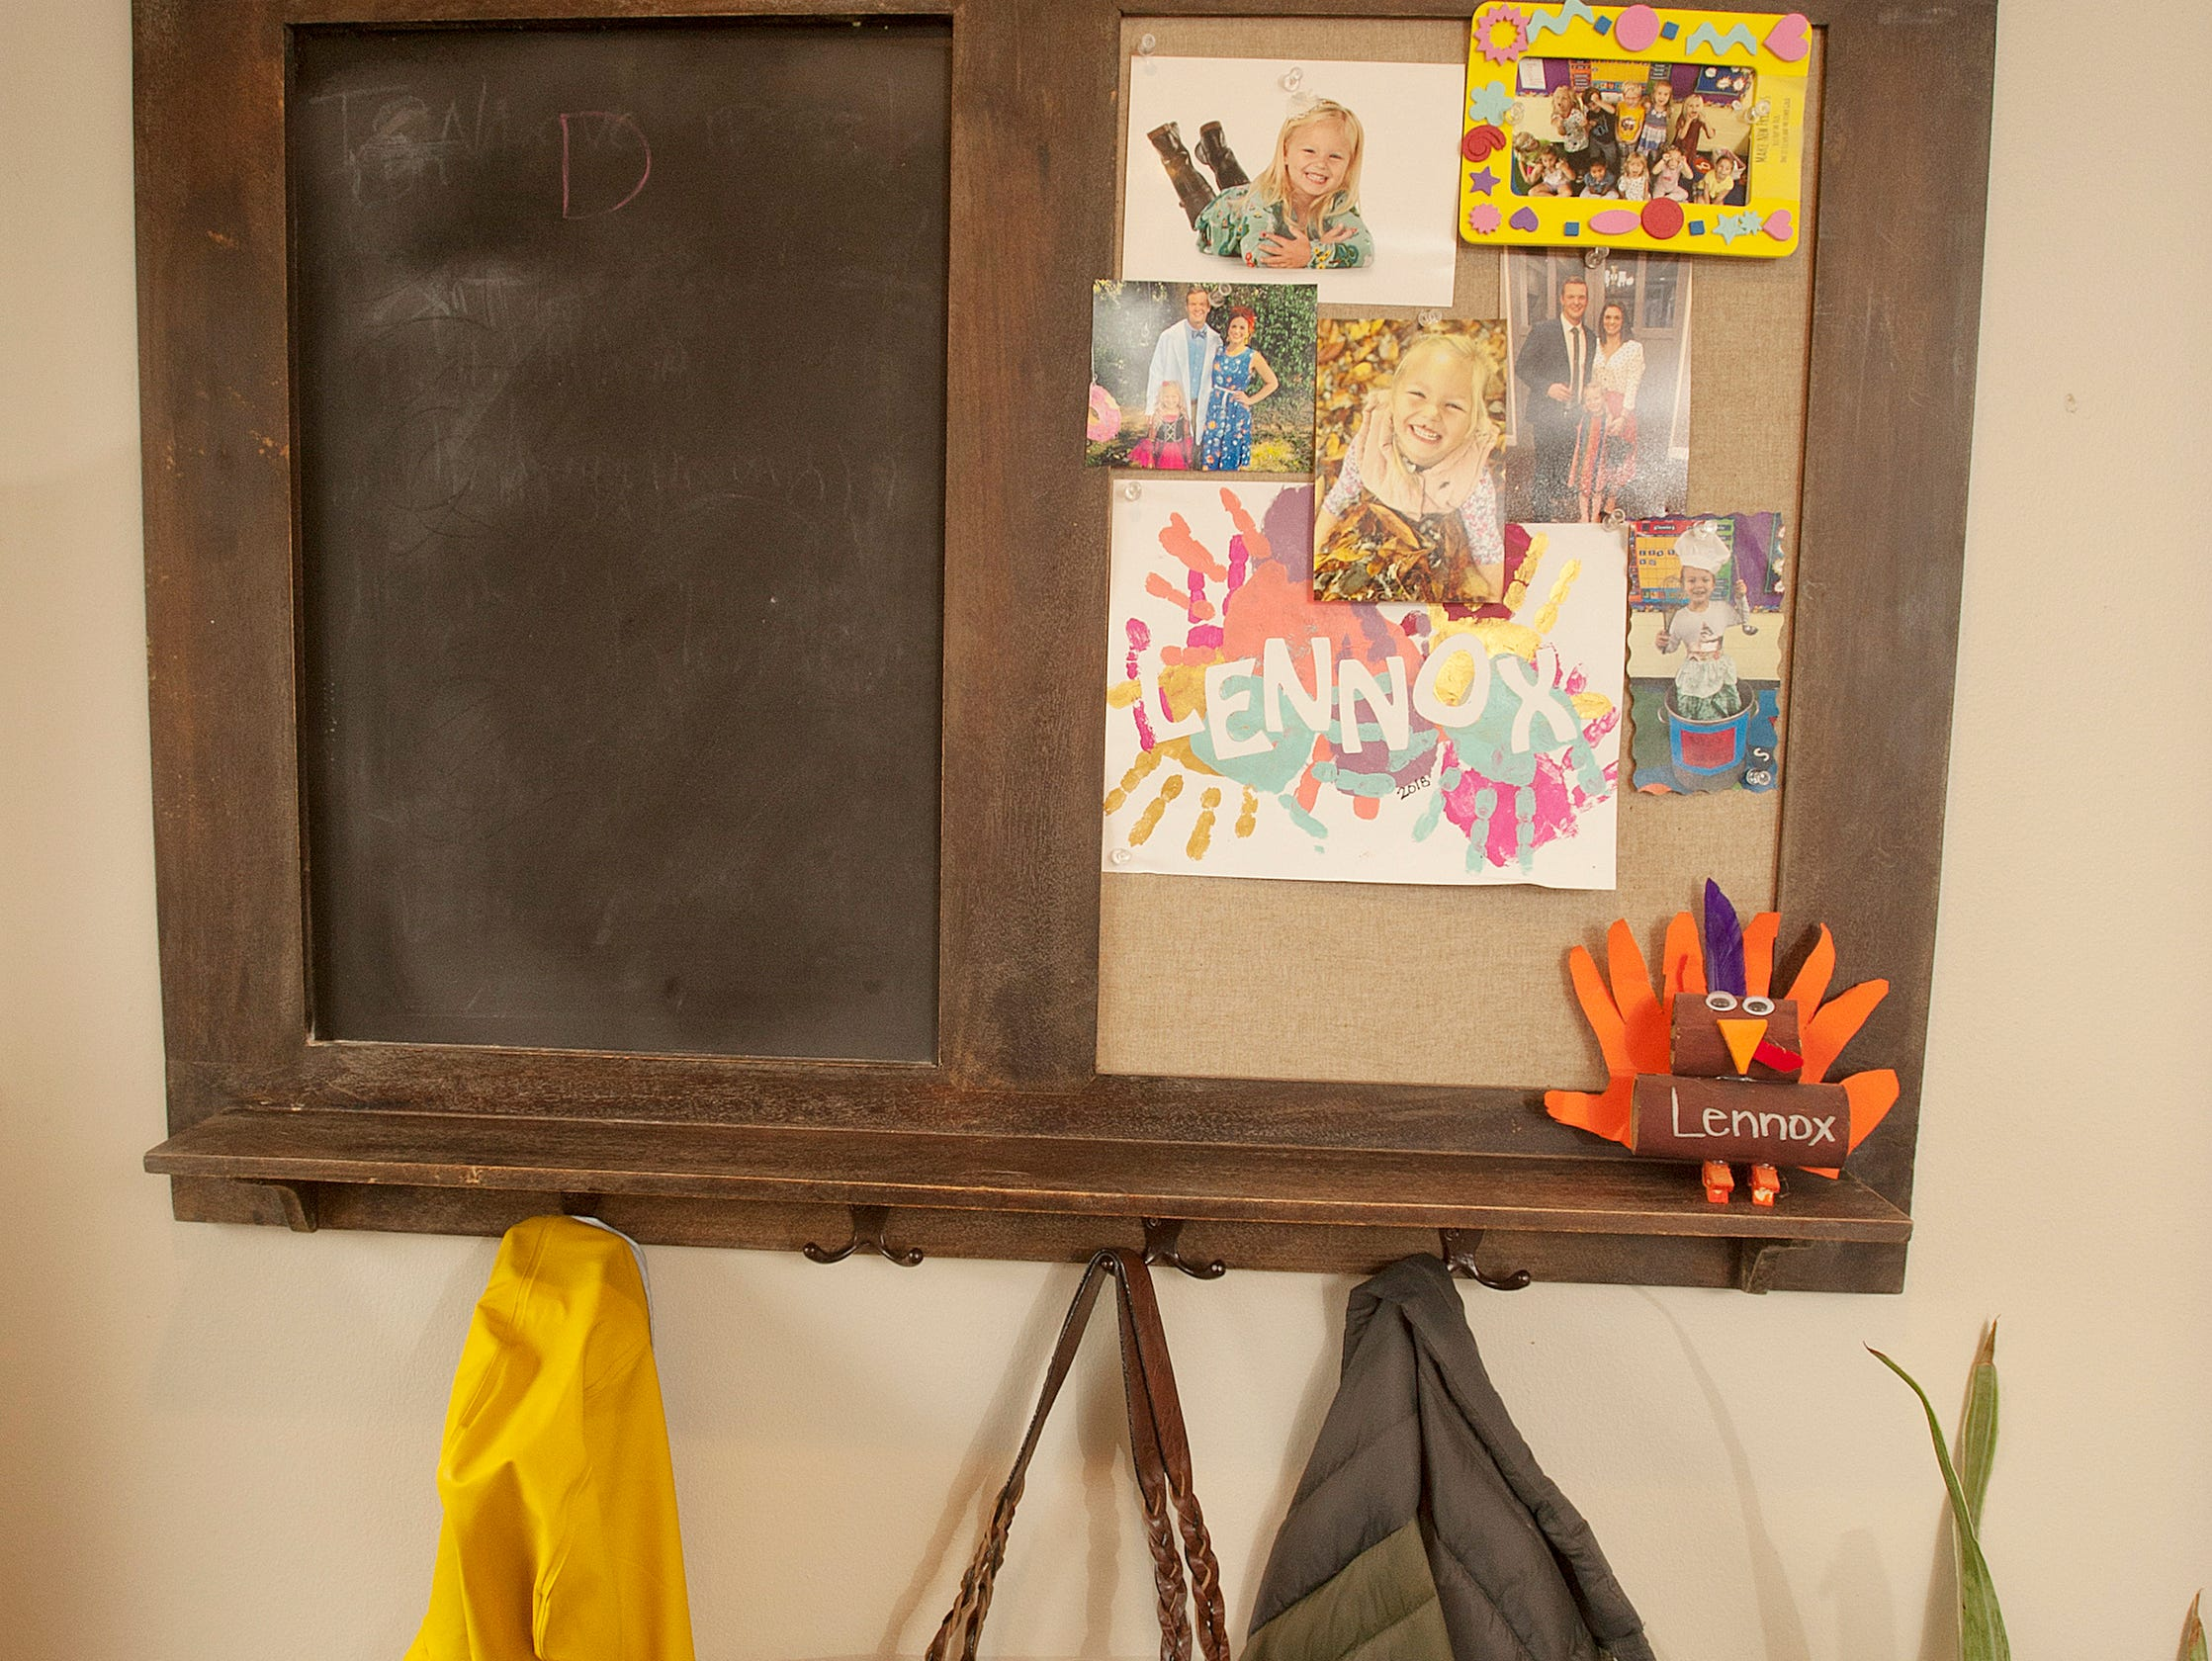 Just inside the living room door is this combined blackboard, coat rack and tack board decorated with photos of Squires' daughter, Lennox, age 5.